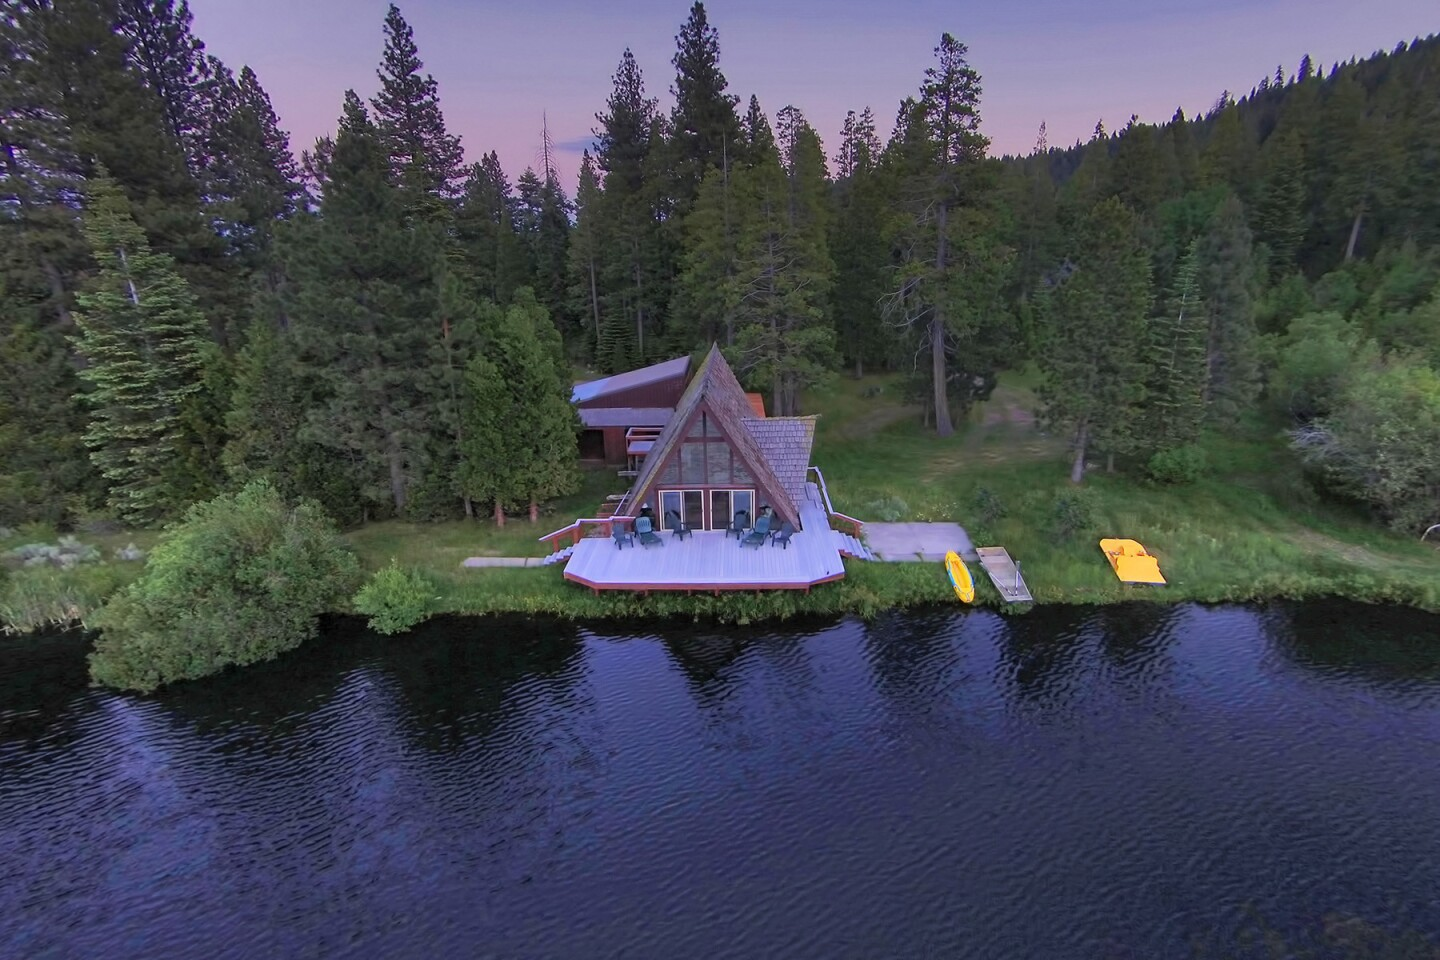 Home of the Day: A woodsy retreat with two lakes in Fort Bidwell